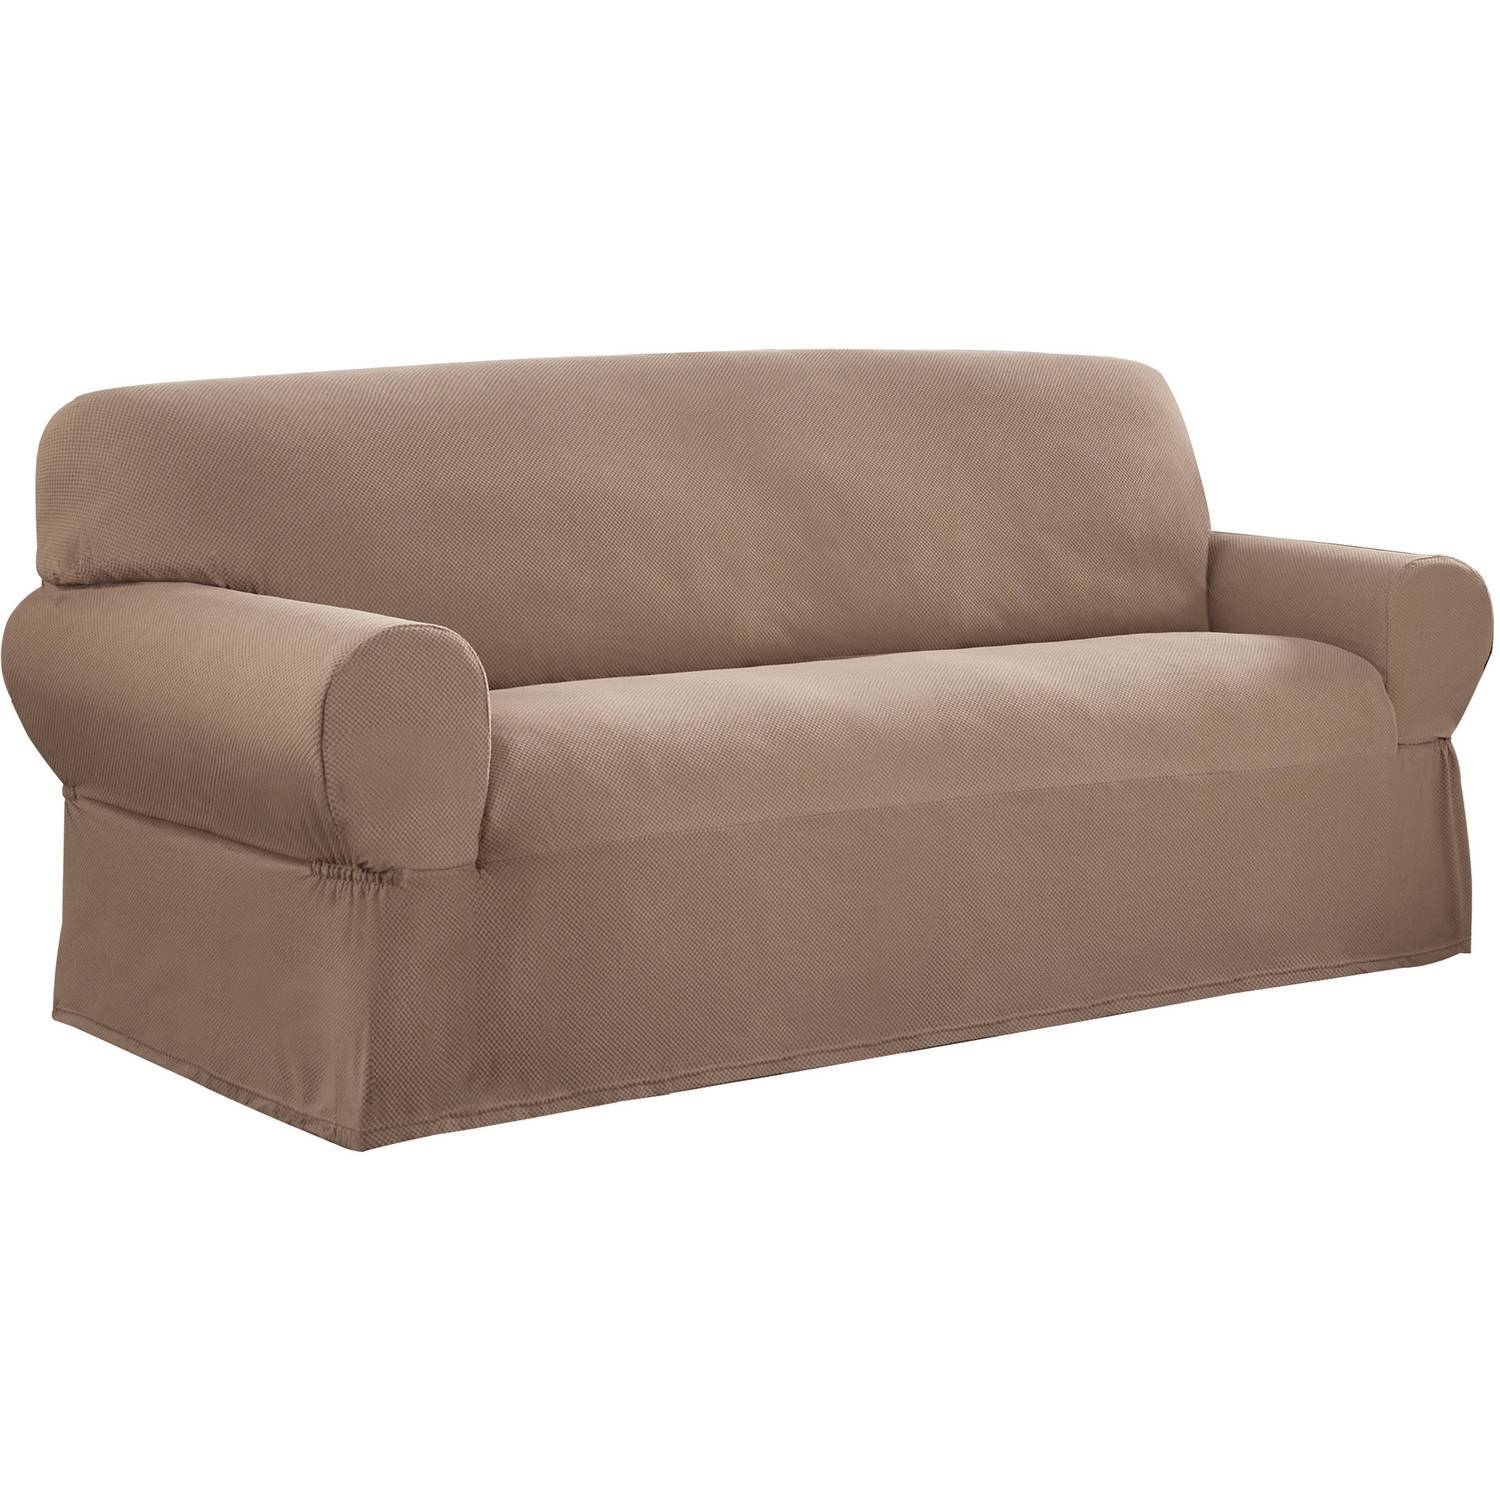 Slipcovers - Walmart intended for Large Sofa Slipcovers (Image 16 of 30)